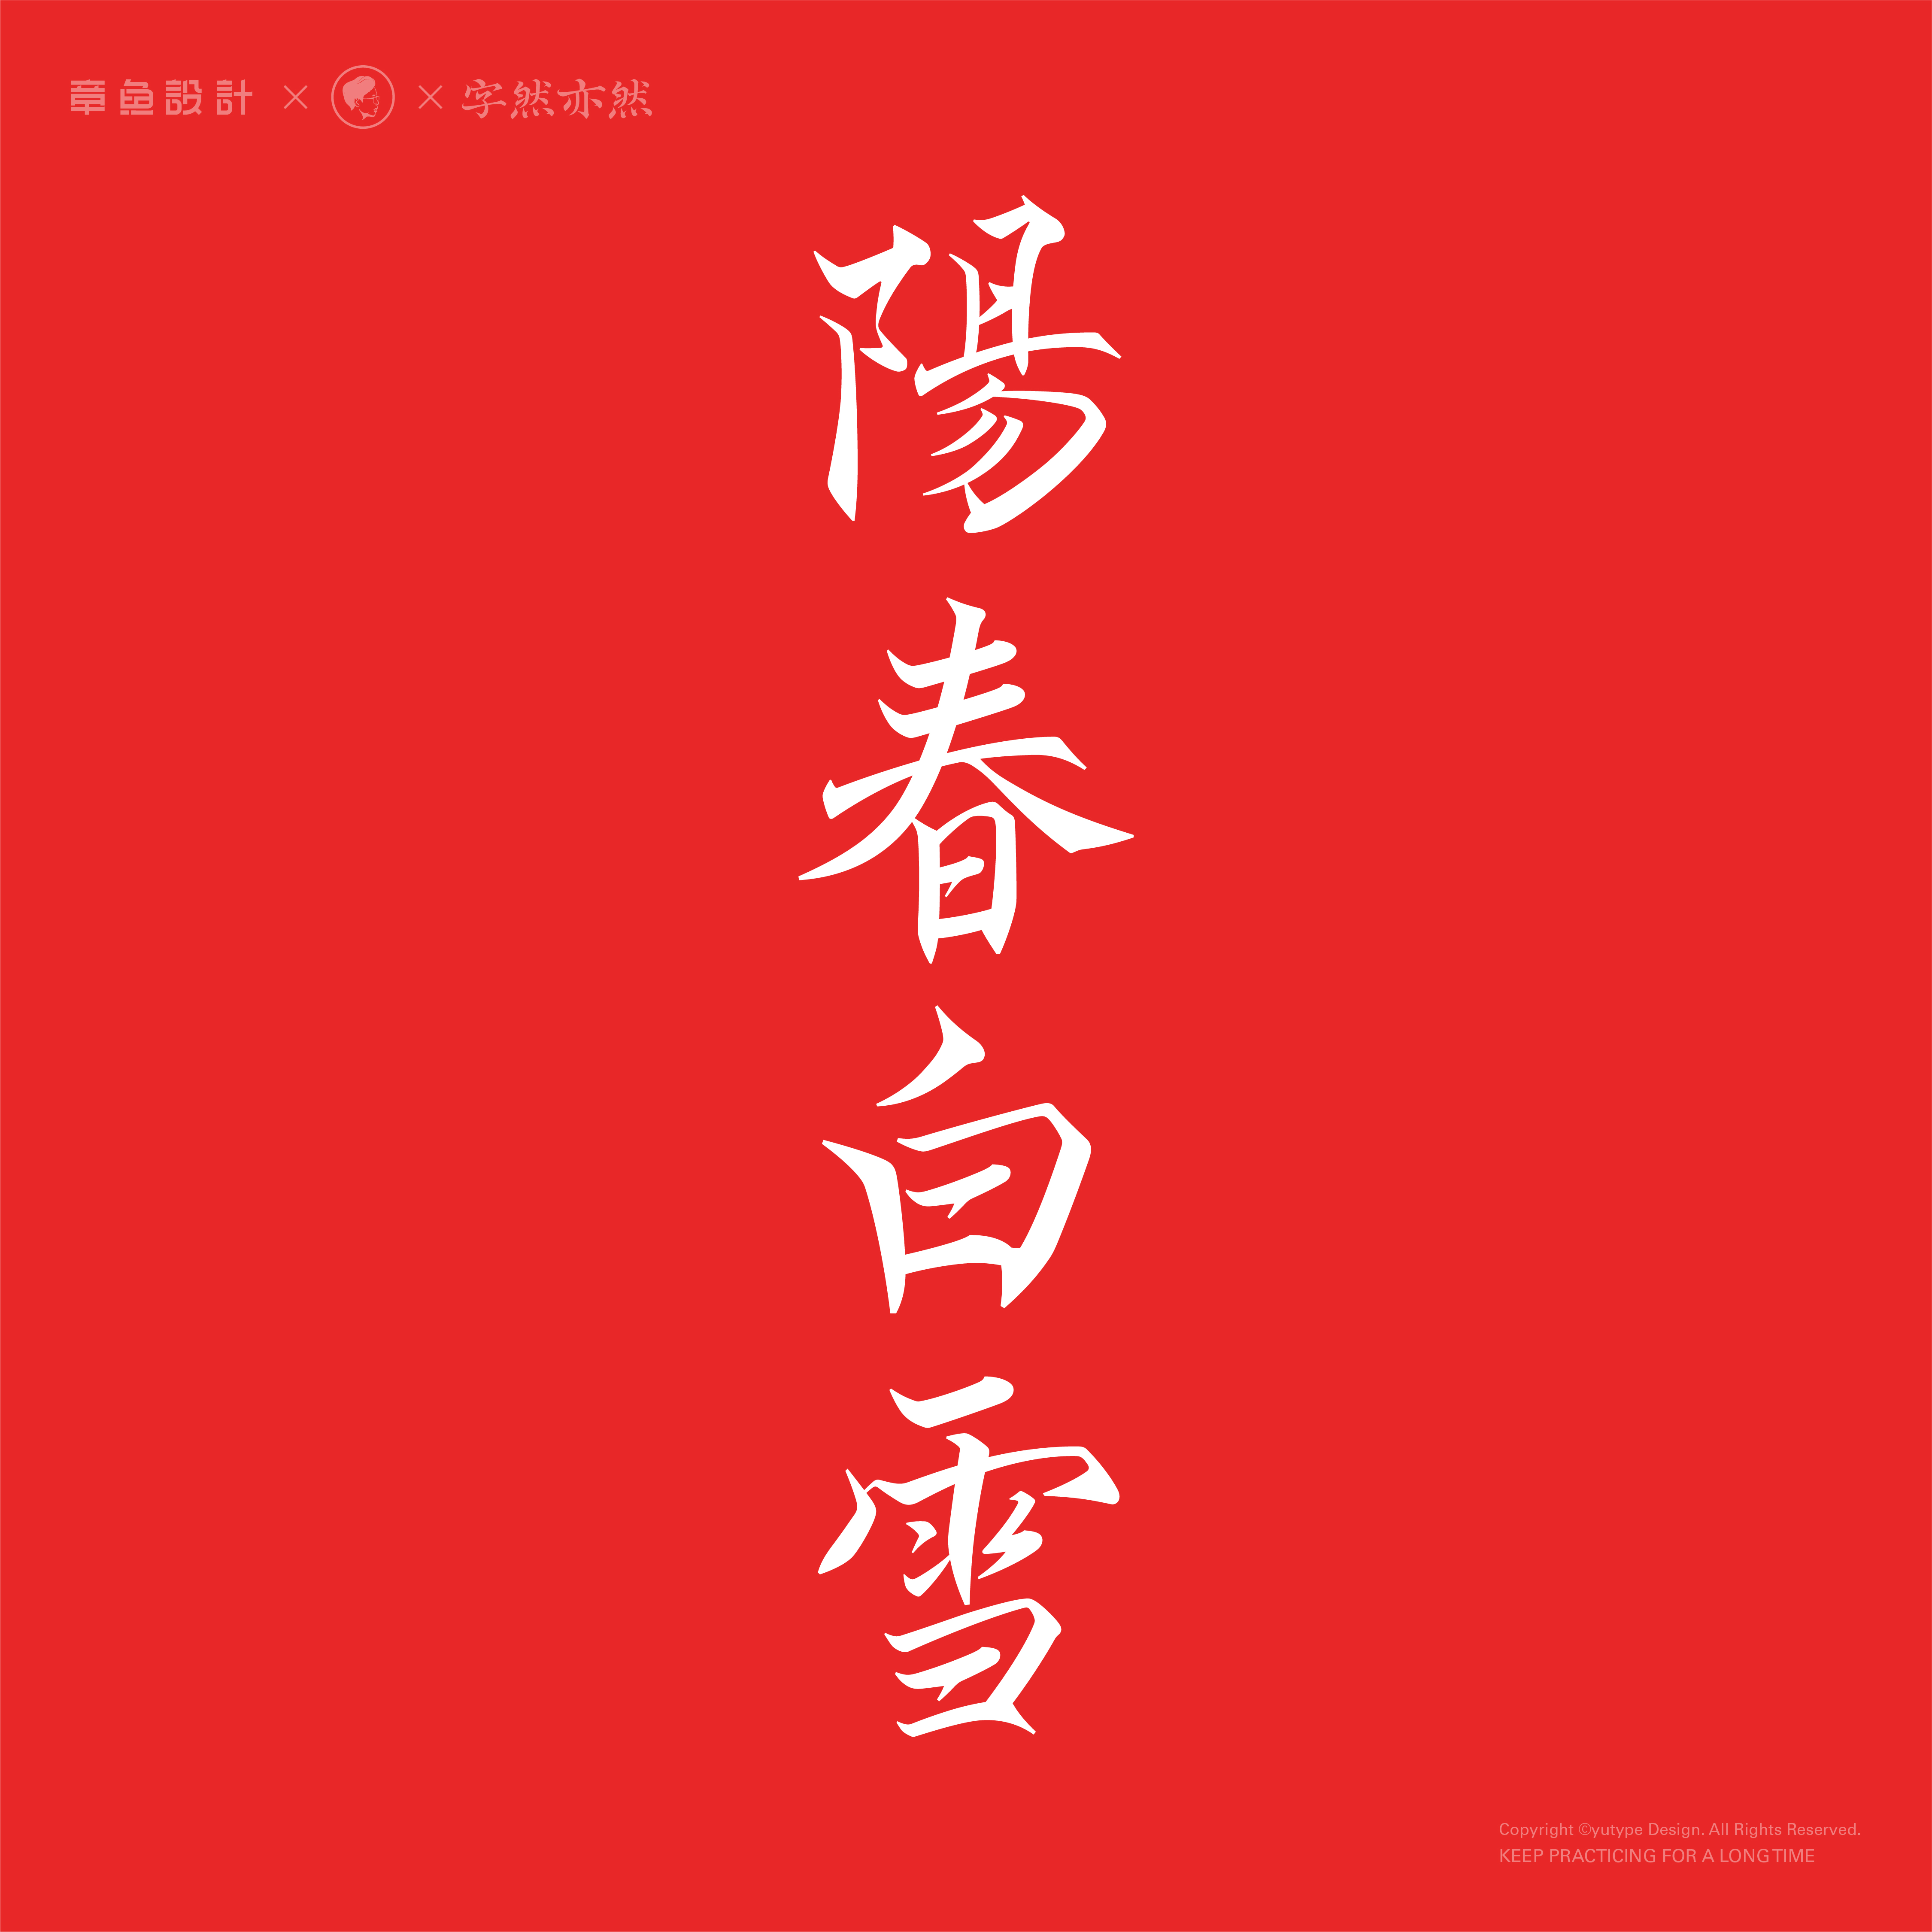 18P Collection of the latest Chinese font design schemes in 2021 #.19